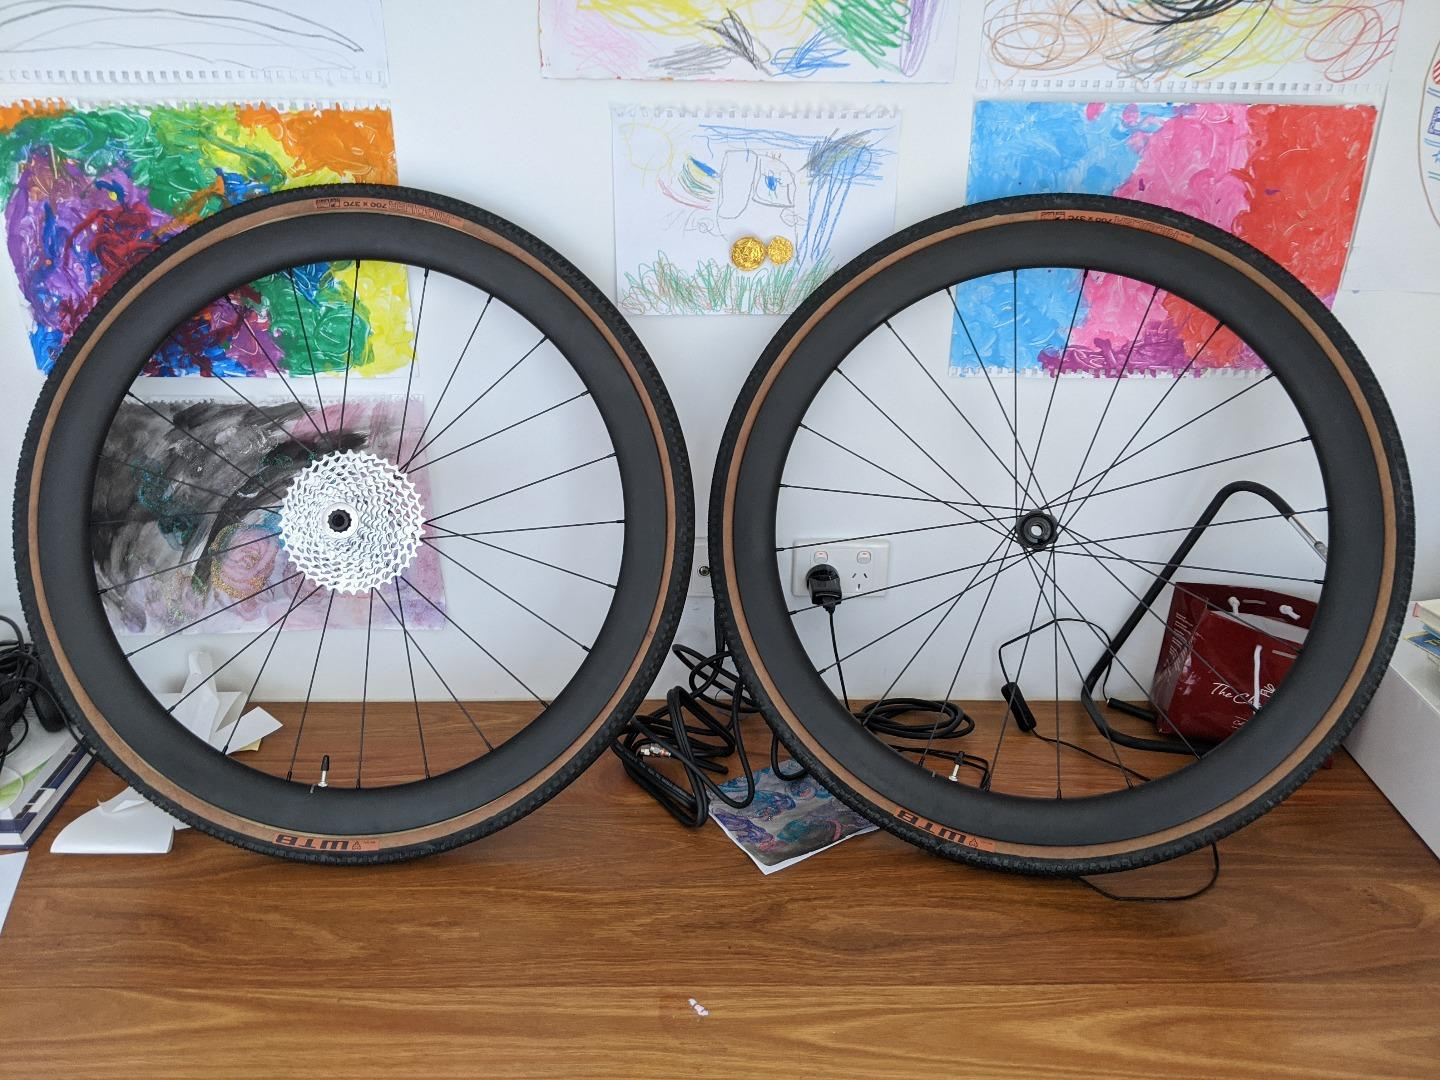 wr45-flyweight-32mm-wide-carbon-wheels-with-wtb-tire-riddler-700-37c